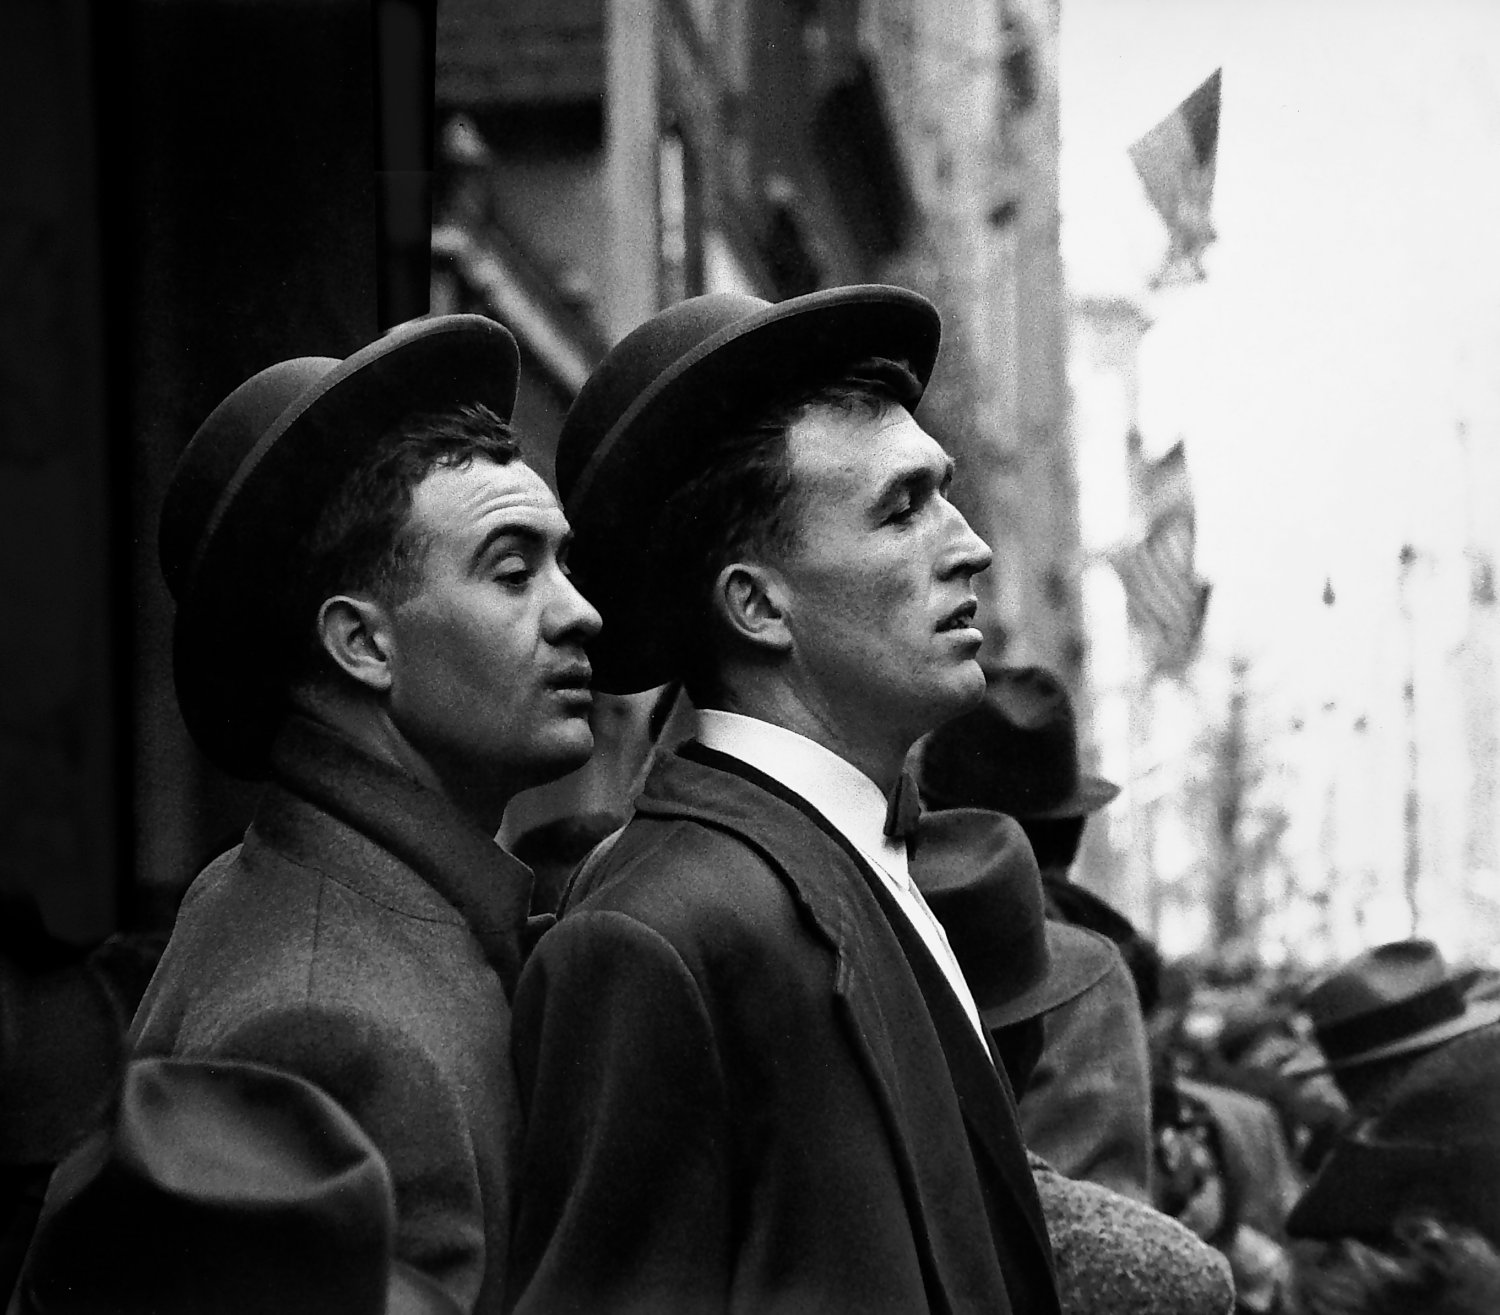 - Two young Irishmen watch the Saint Patrick's Day parade in New York City. - Photojournalism - Life Magazine - Black and white photography - Canon rangefinder and SLR cameras - Tony Karp, design, art, photography, techno-impressionist, techno-impressionism, aerial photography , drone , drones , dji , mavic pro , video , 3D printing - Books -